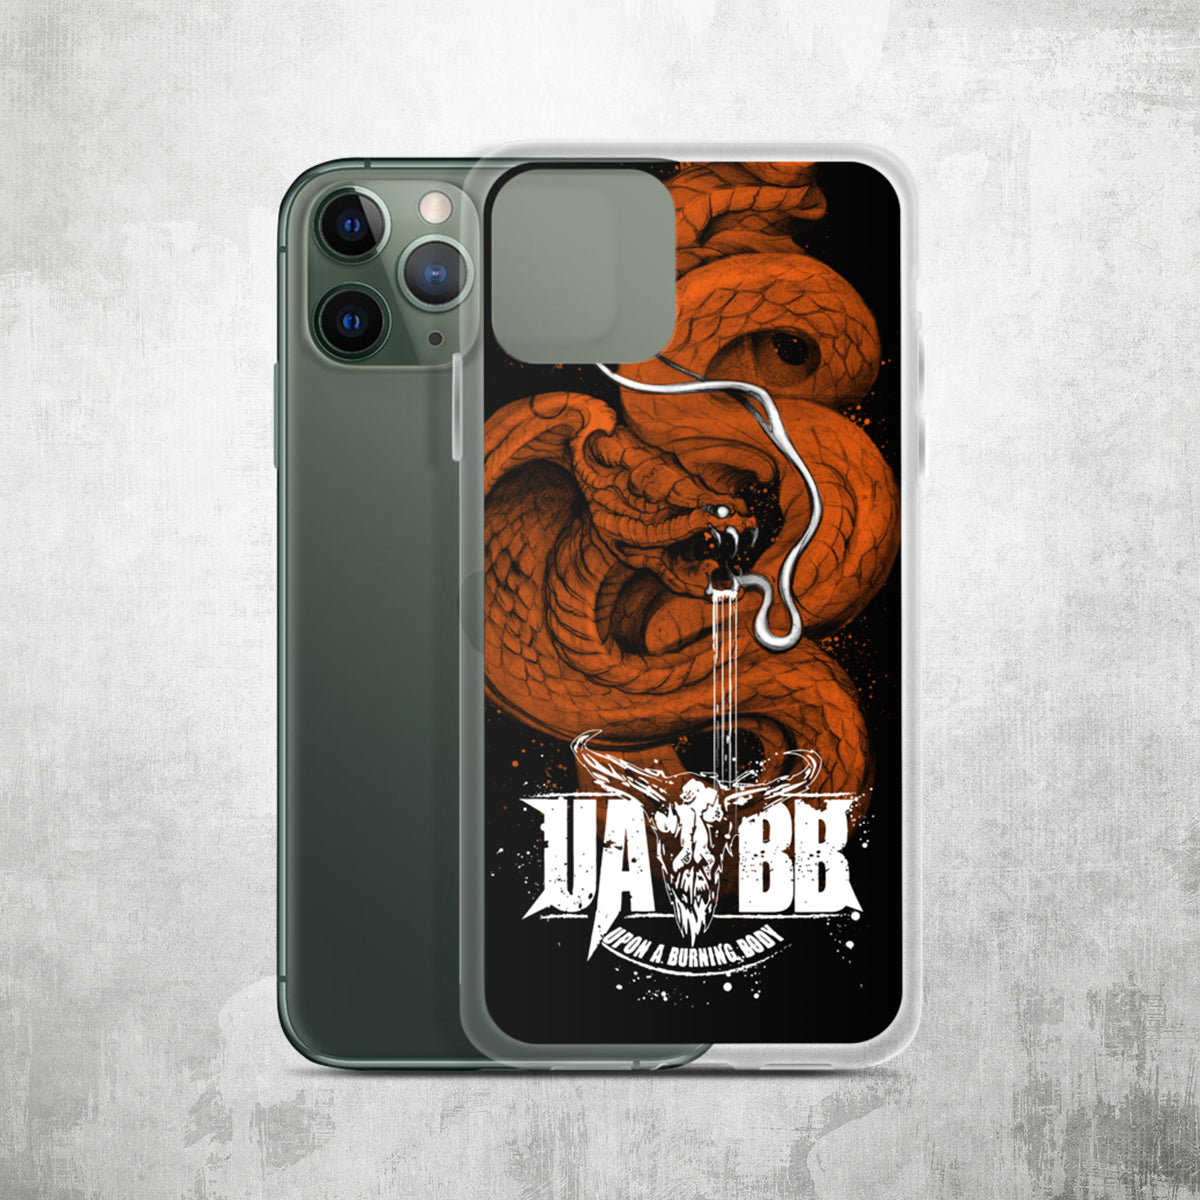 Venom | iPhone Cases